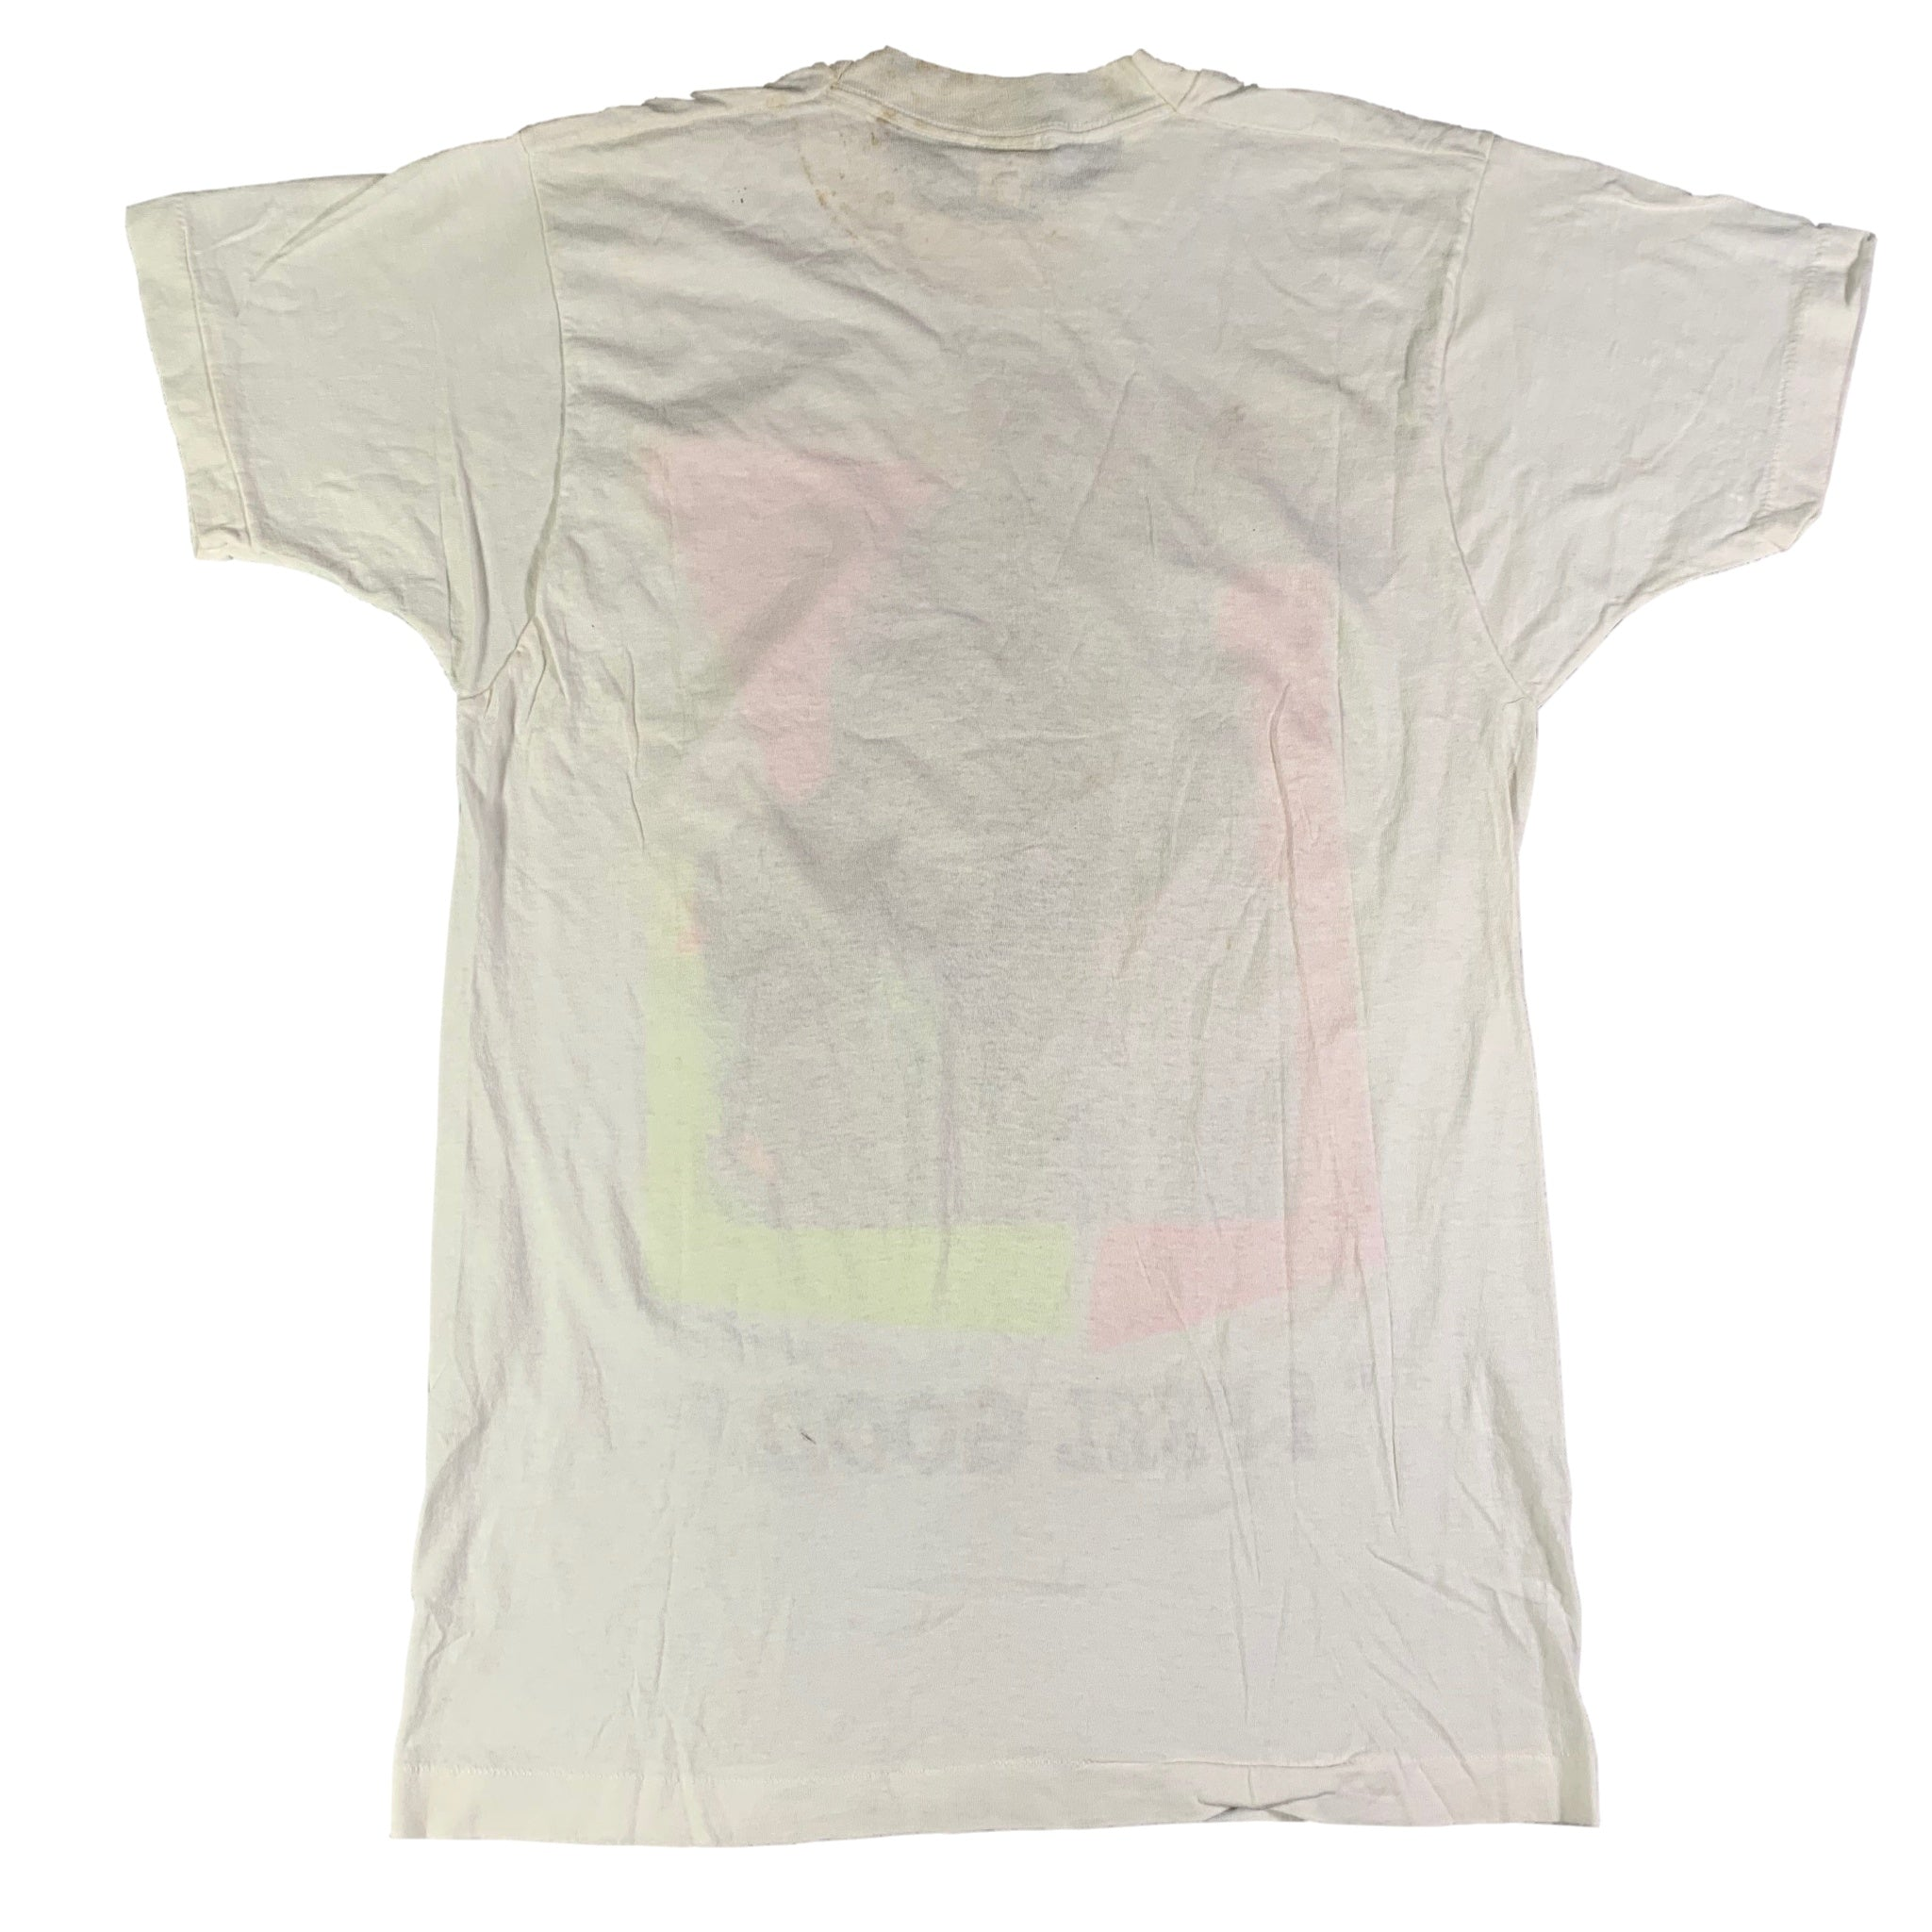 "Vintage James Brown ""I Feel Good"" T-Shirt"